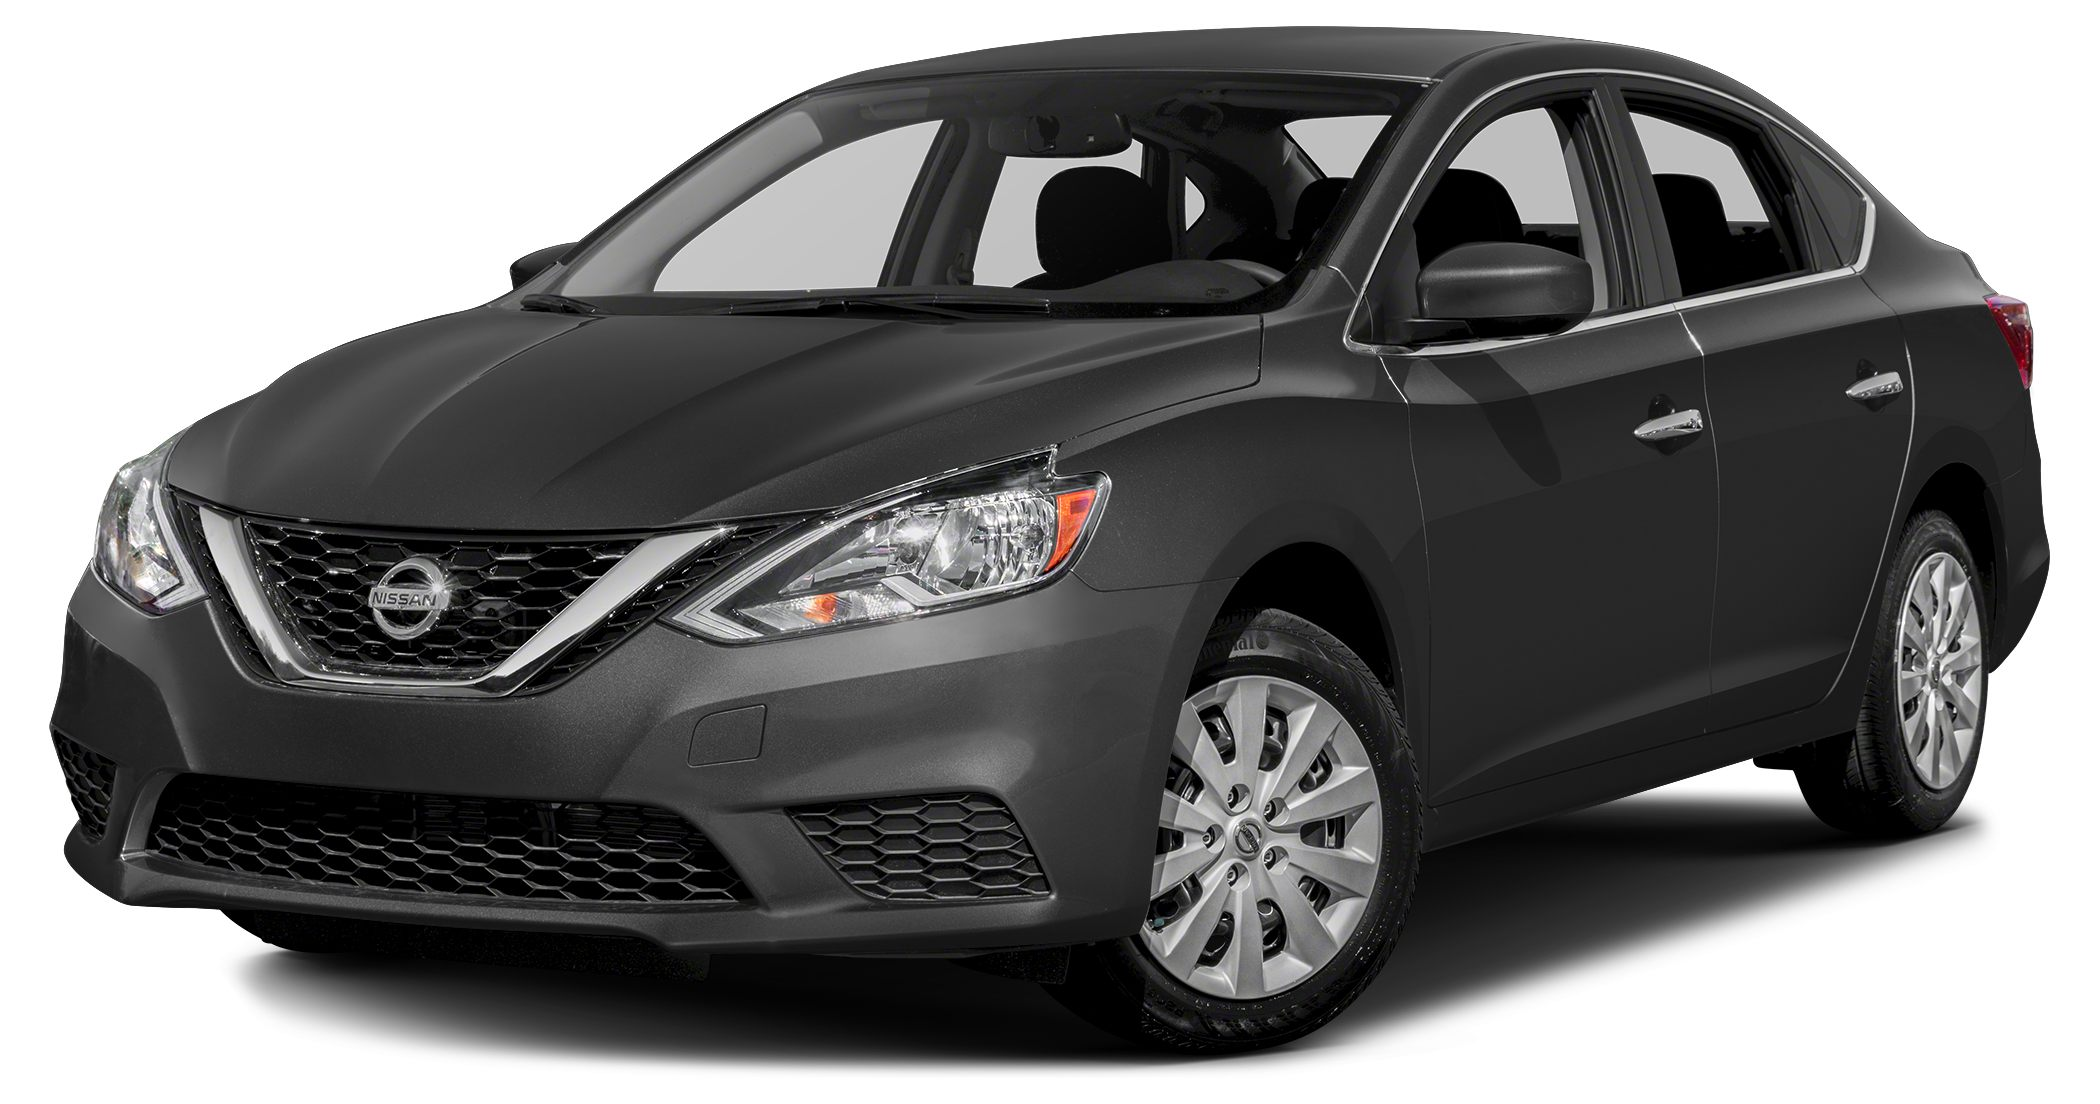 2017 Nissan Sentra SV New Arrival This 2017 Nissan Sentra SV will sell fast This Sentra has many